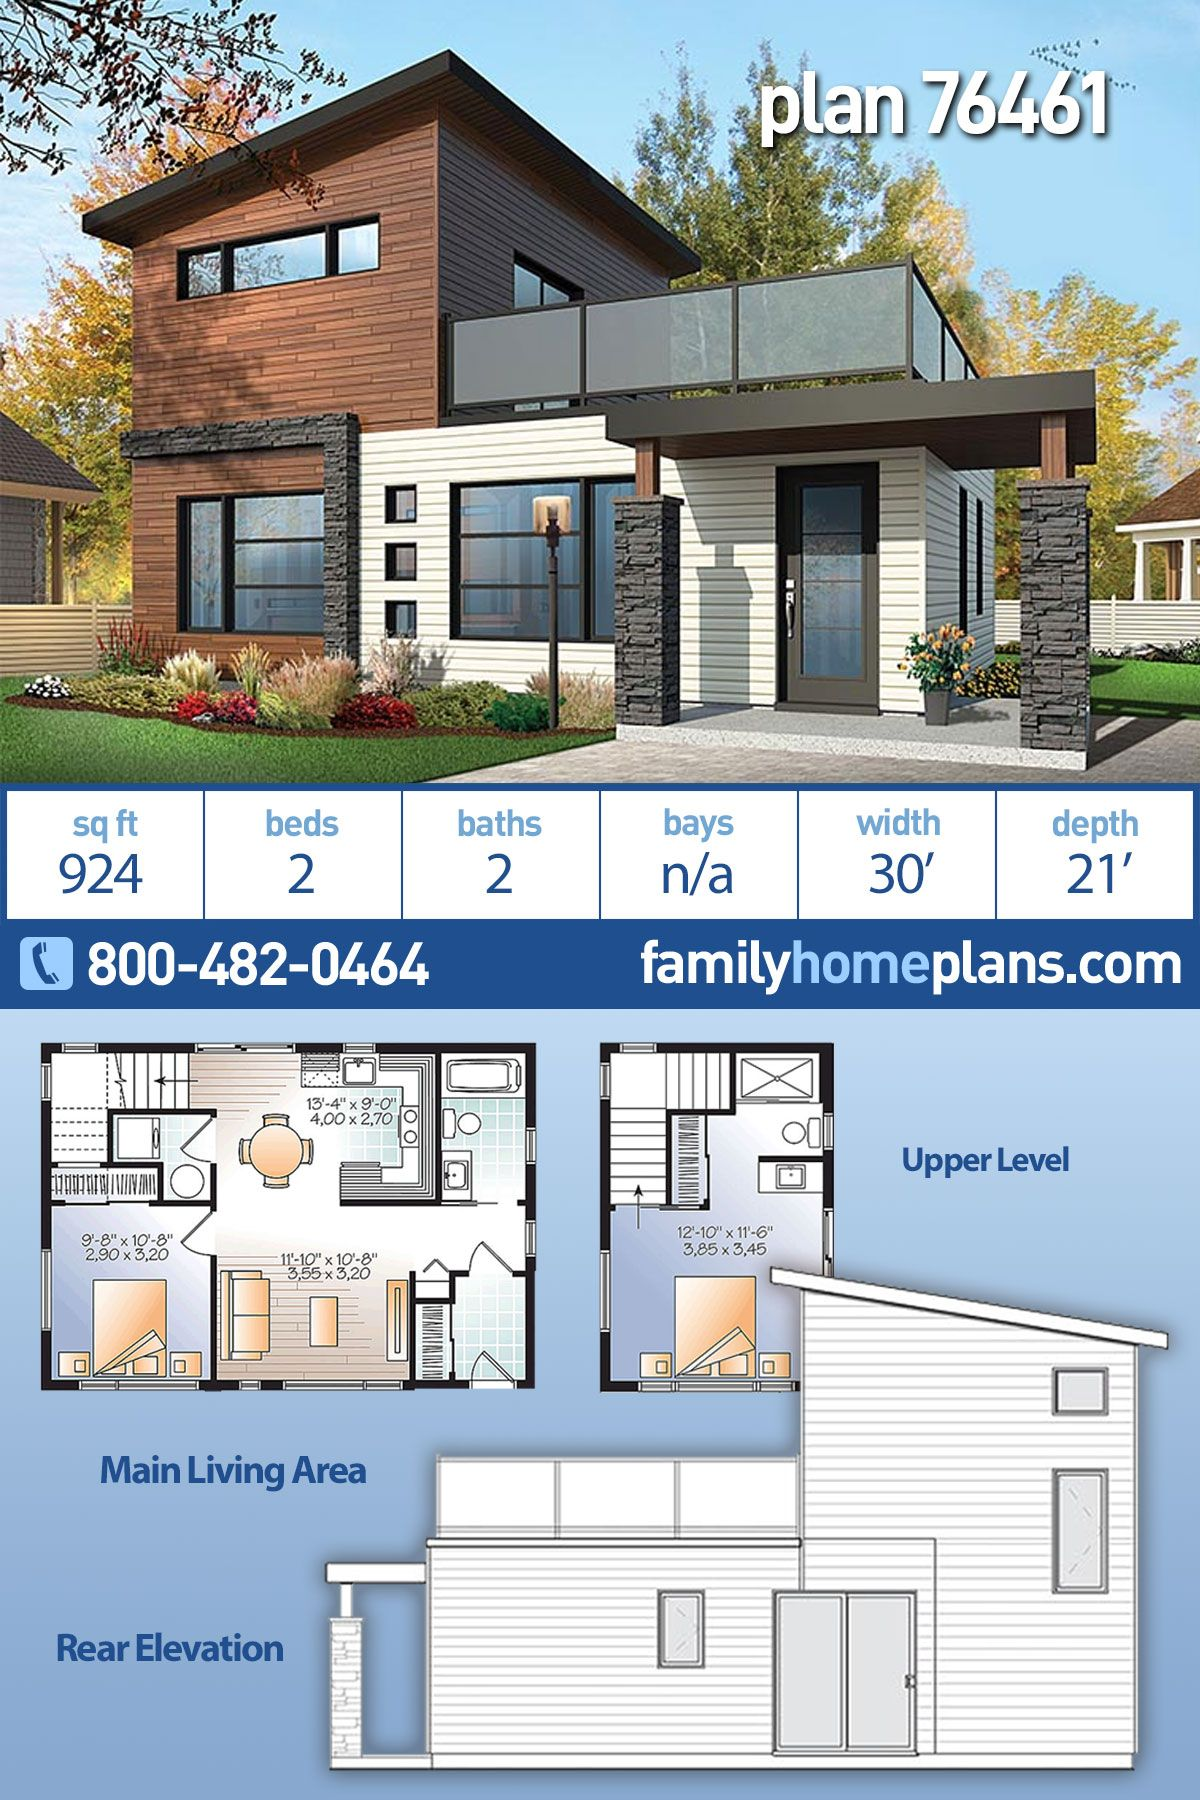 Modern Style House Plan 76461 With 2 Bed 2 Bath Beautiful